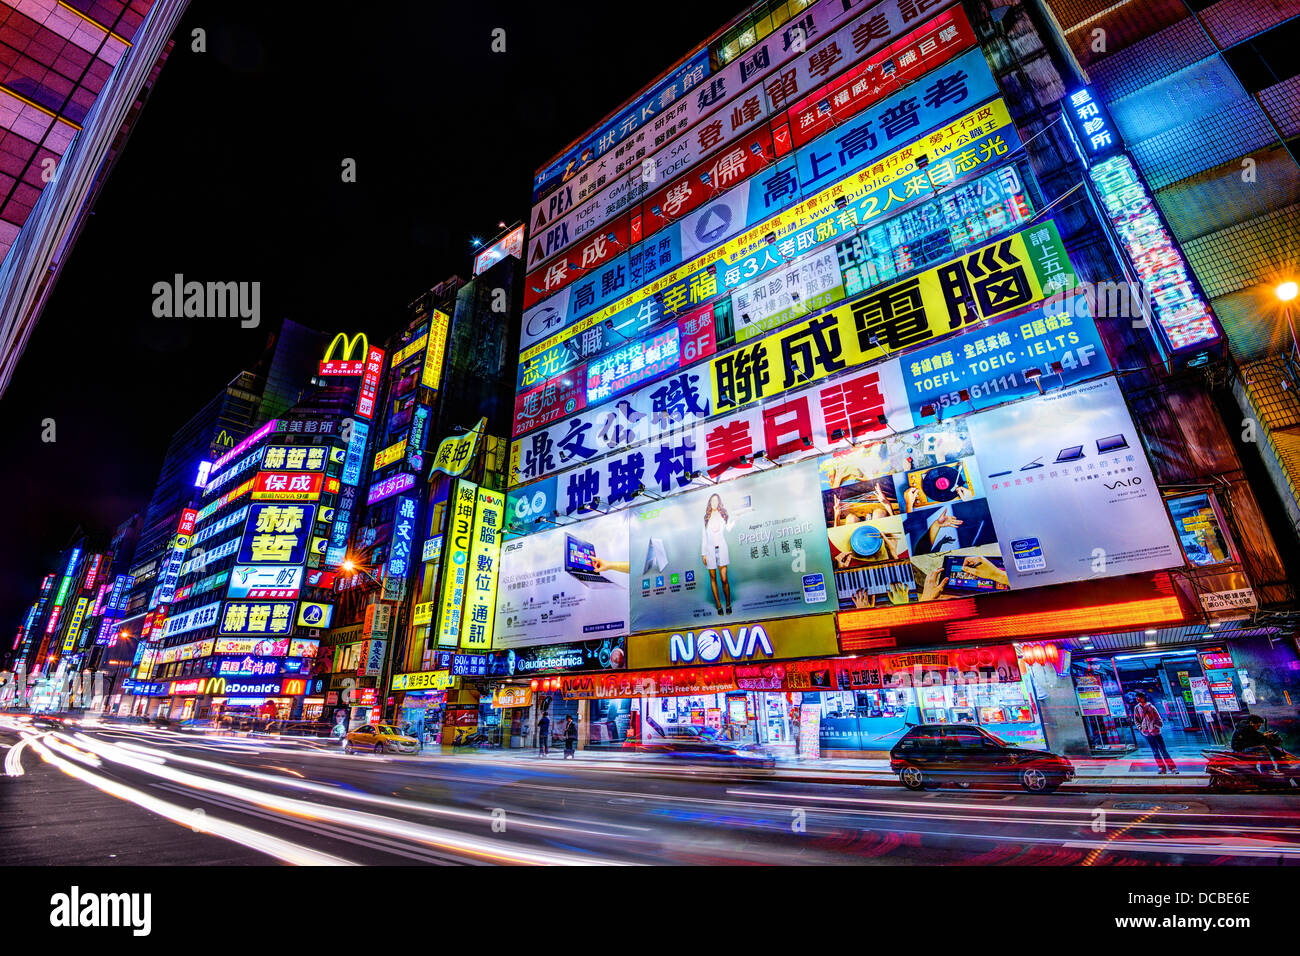 Nightlife in Zhongzheng District of Taipei, Taiwan. - Stock Image